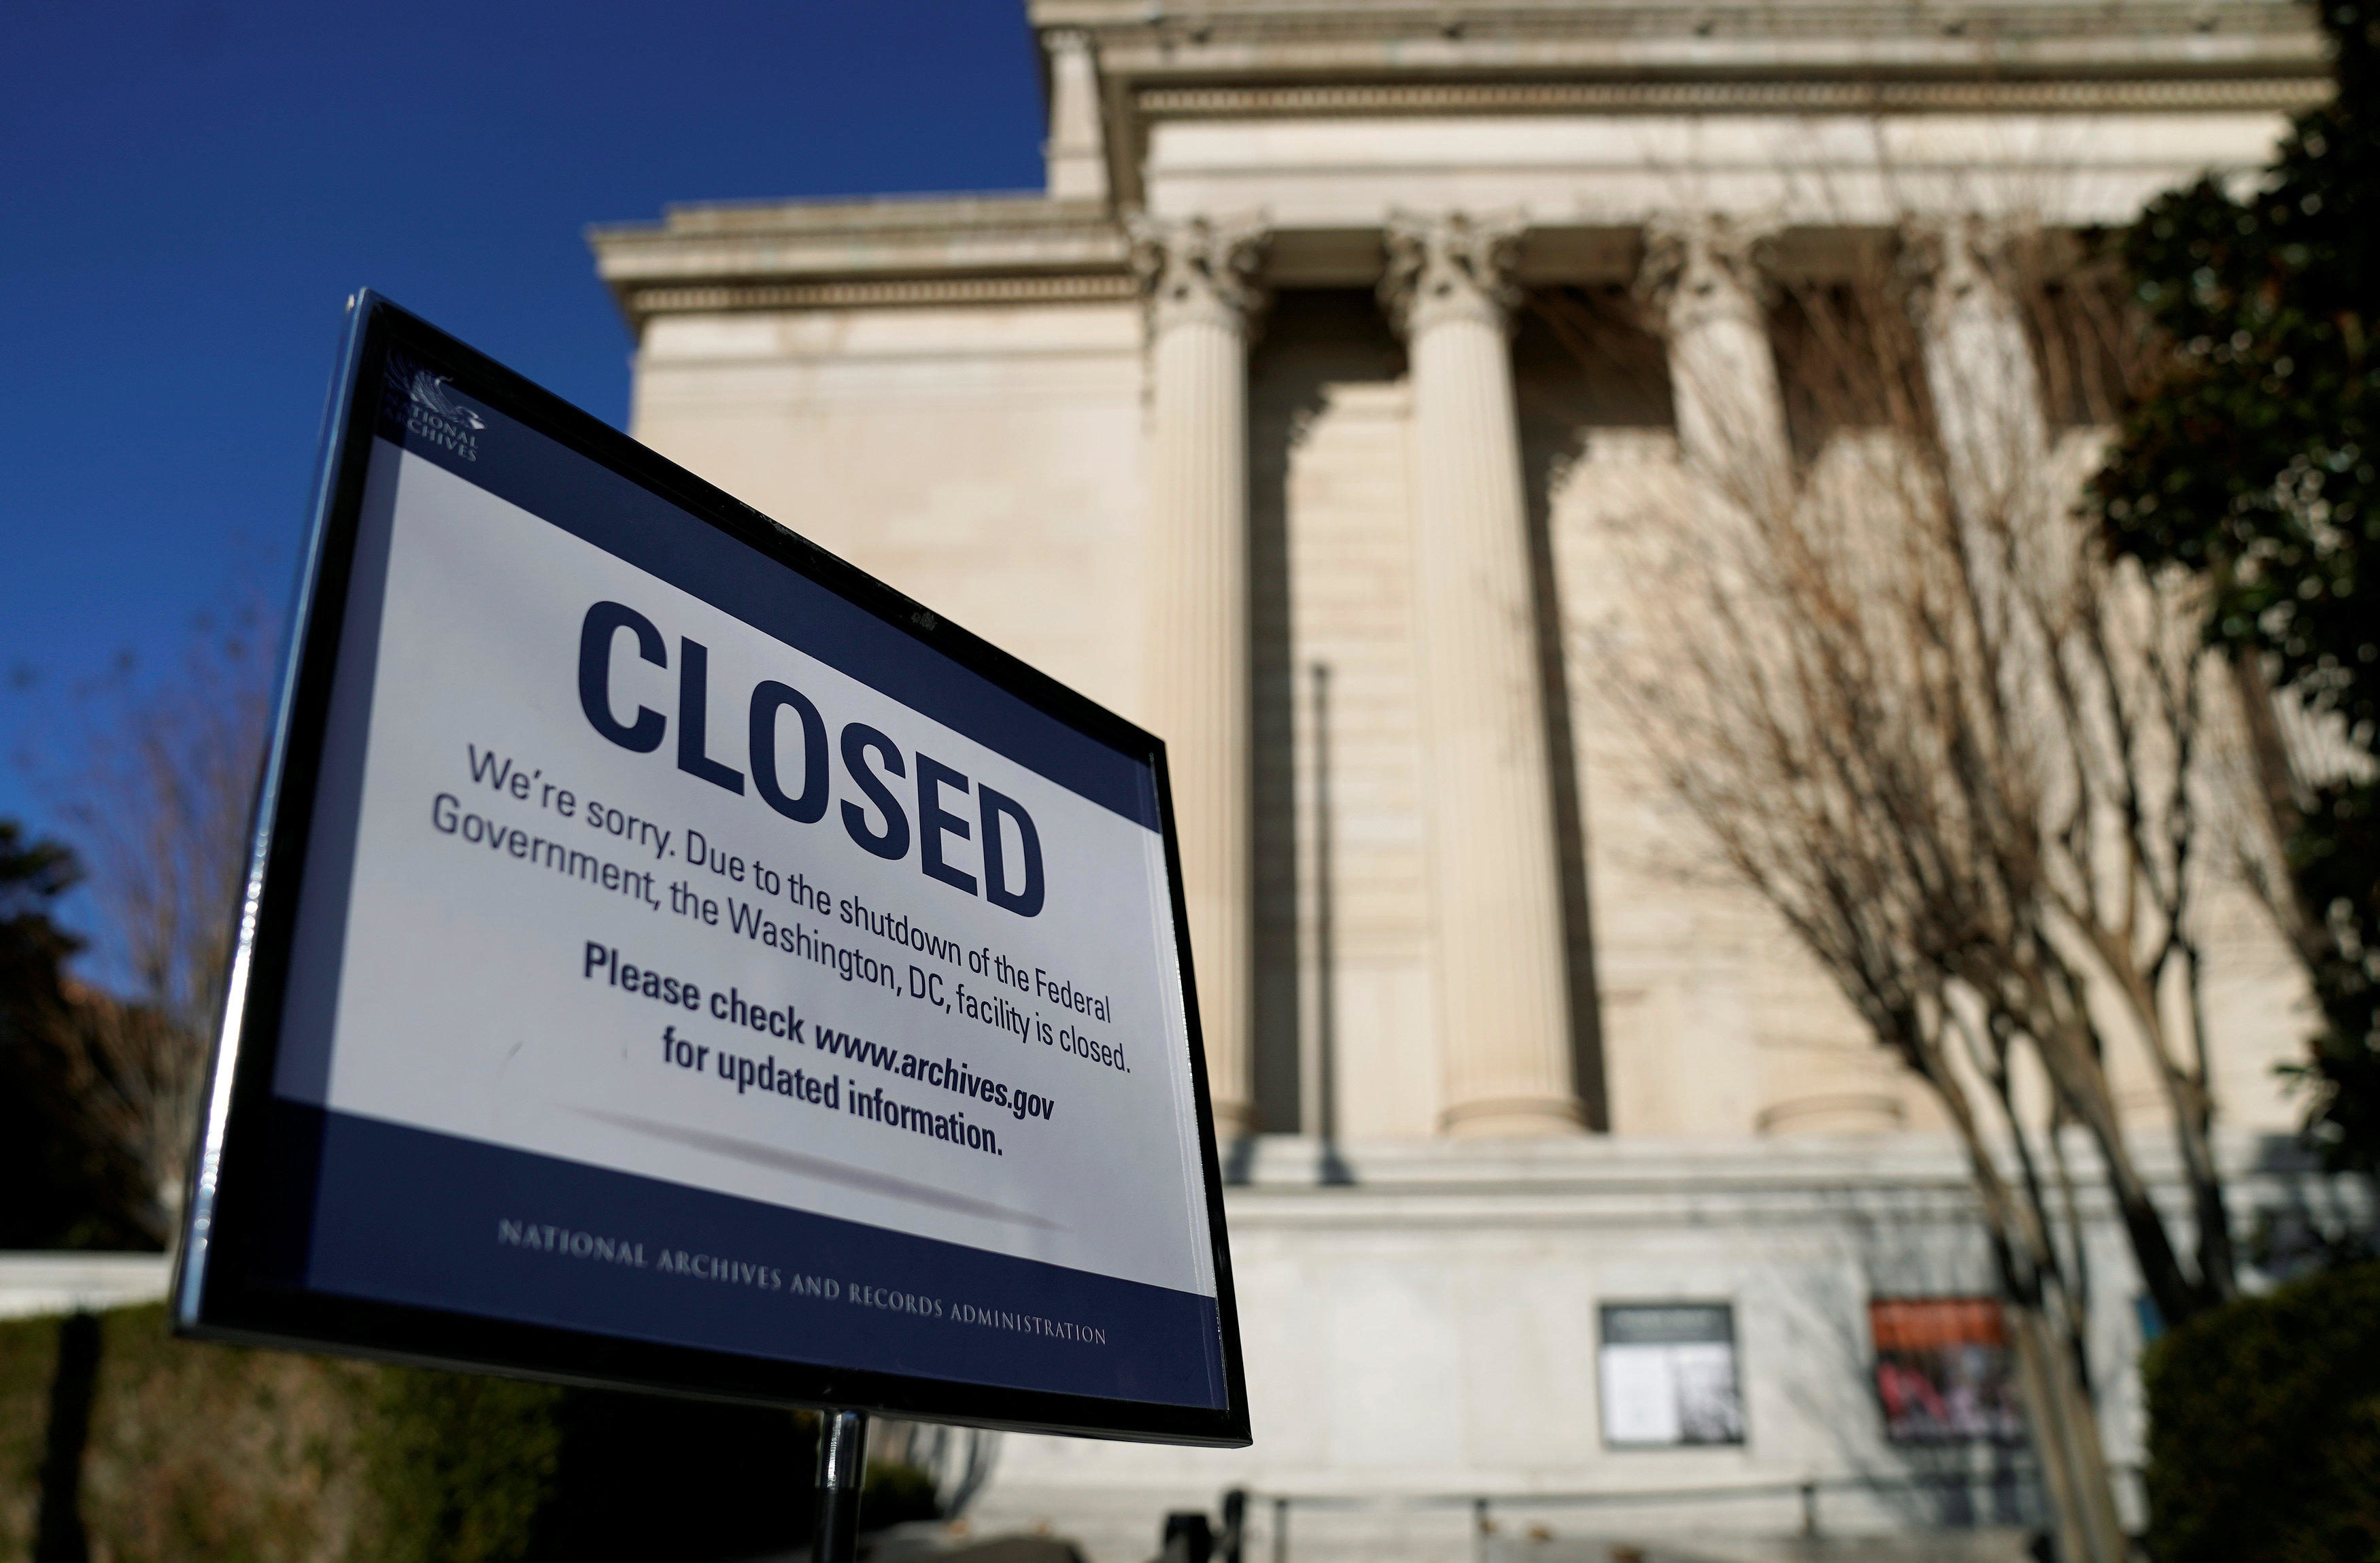 shutdown-washington-3500x2299.jpg